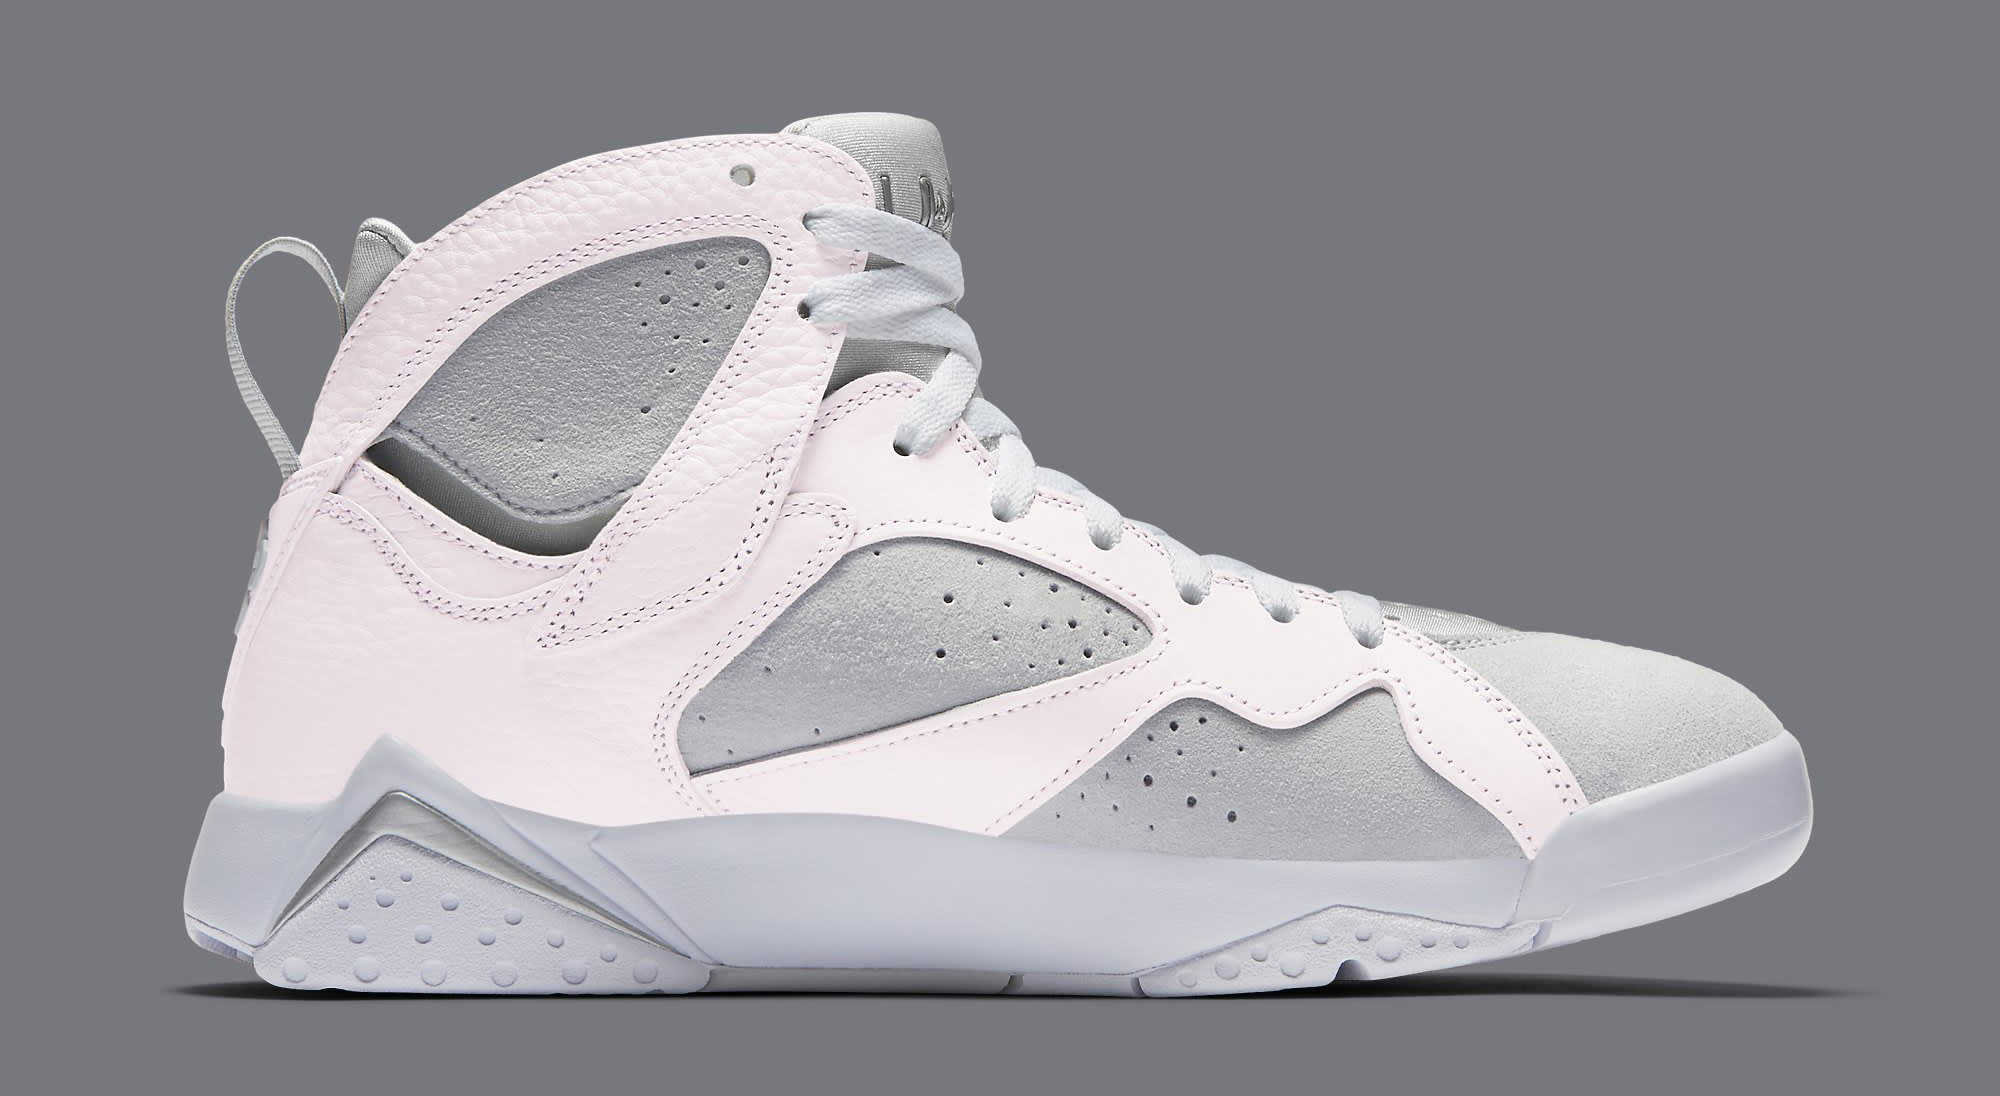 White Air Jordan 7 304775-120 Medial